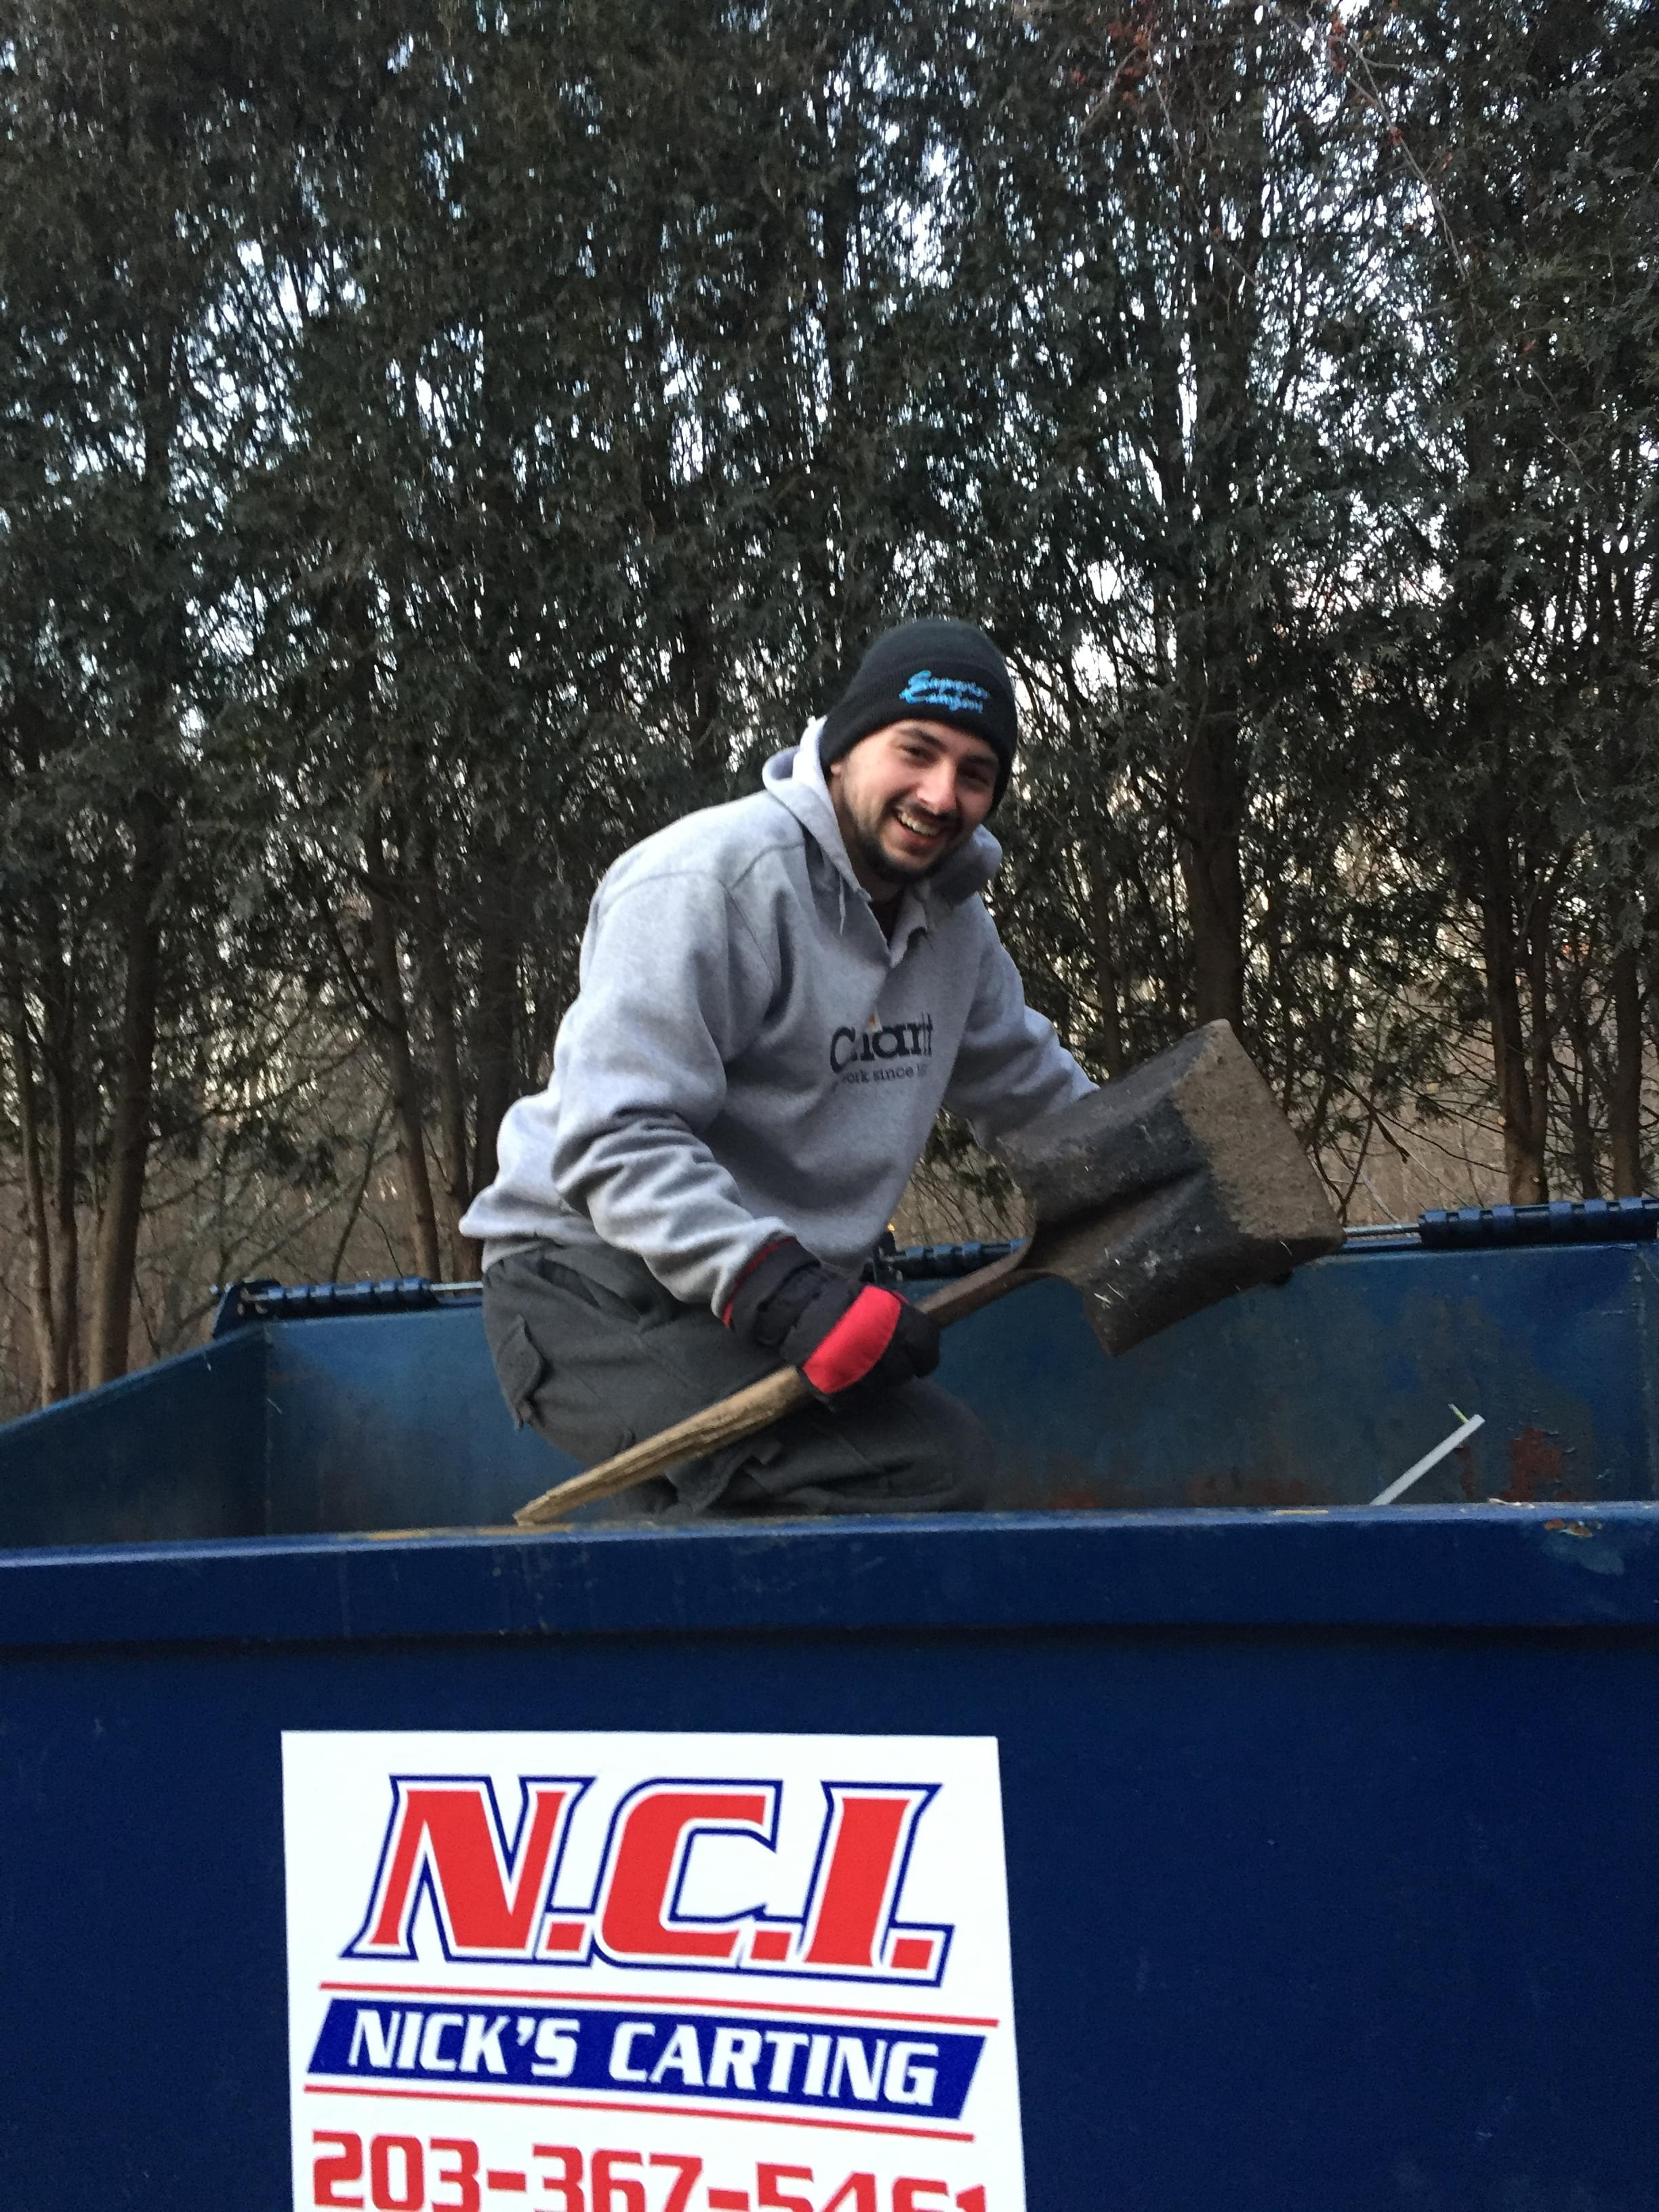 60 Seconds Behind The Scenes- Producer Christian goes dumpster diving for treasure!